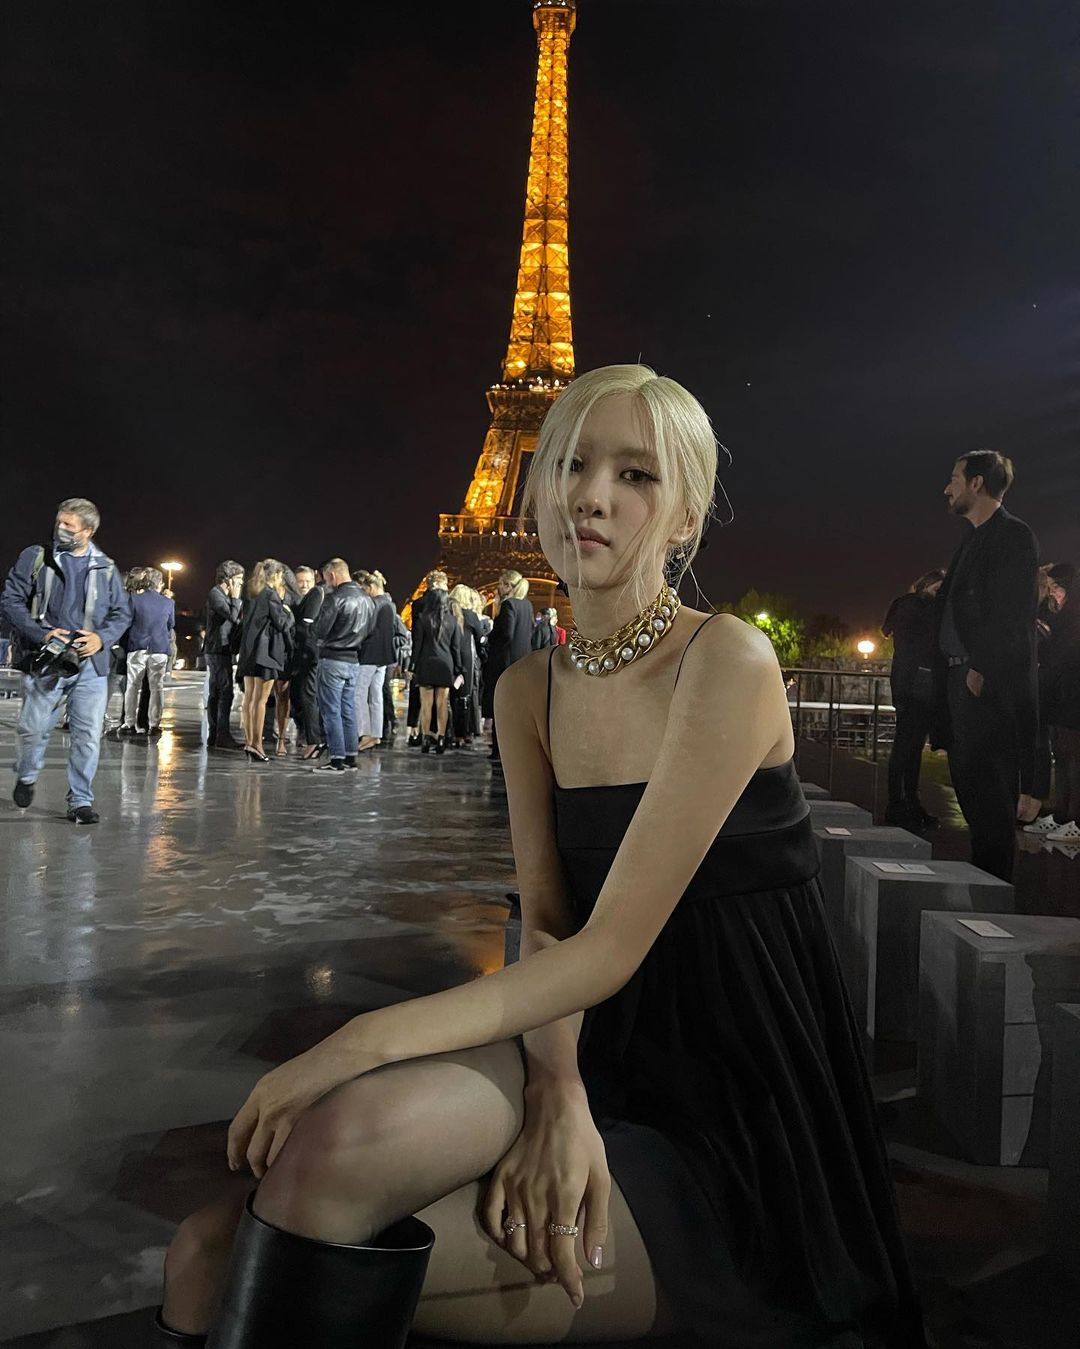 Rosé, with the background of the Eiffel Tower, a slender body…the existence is a luxury